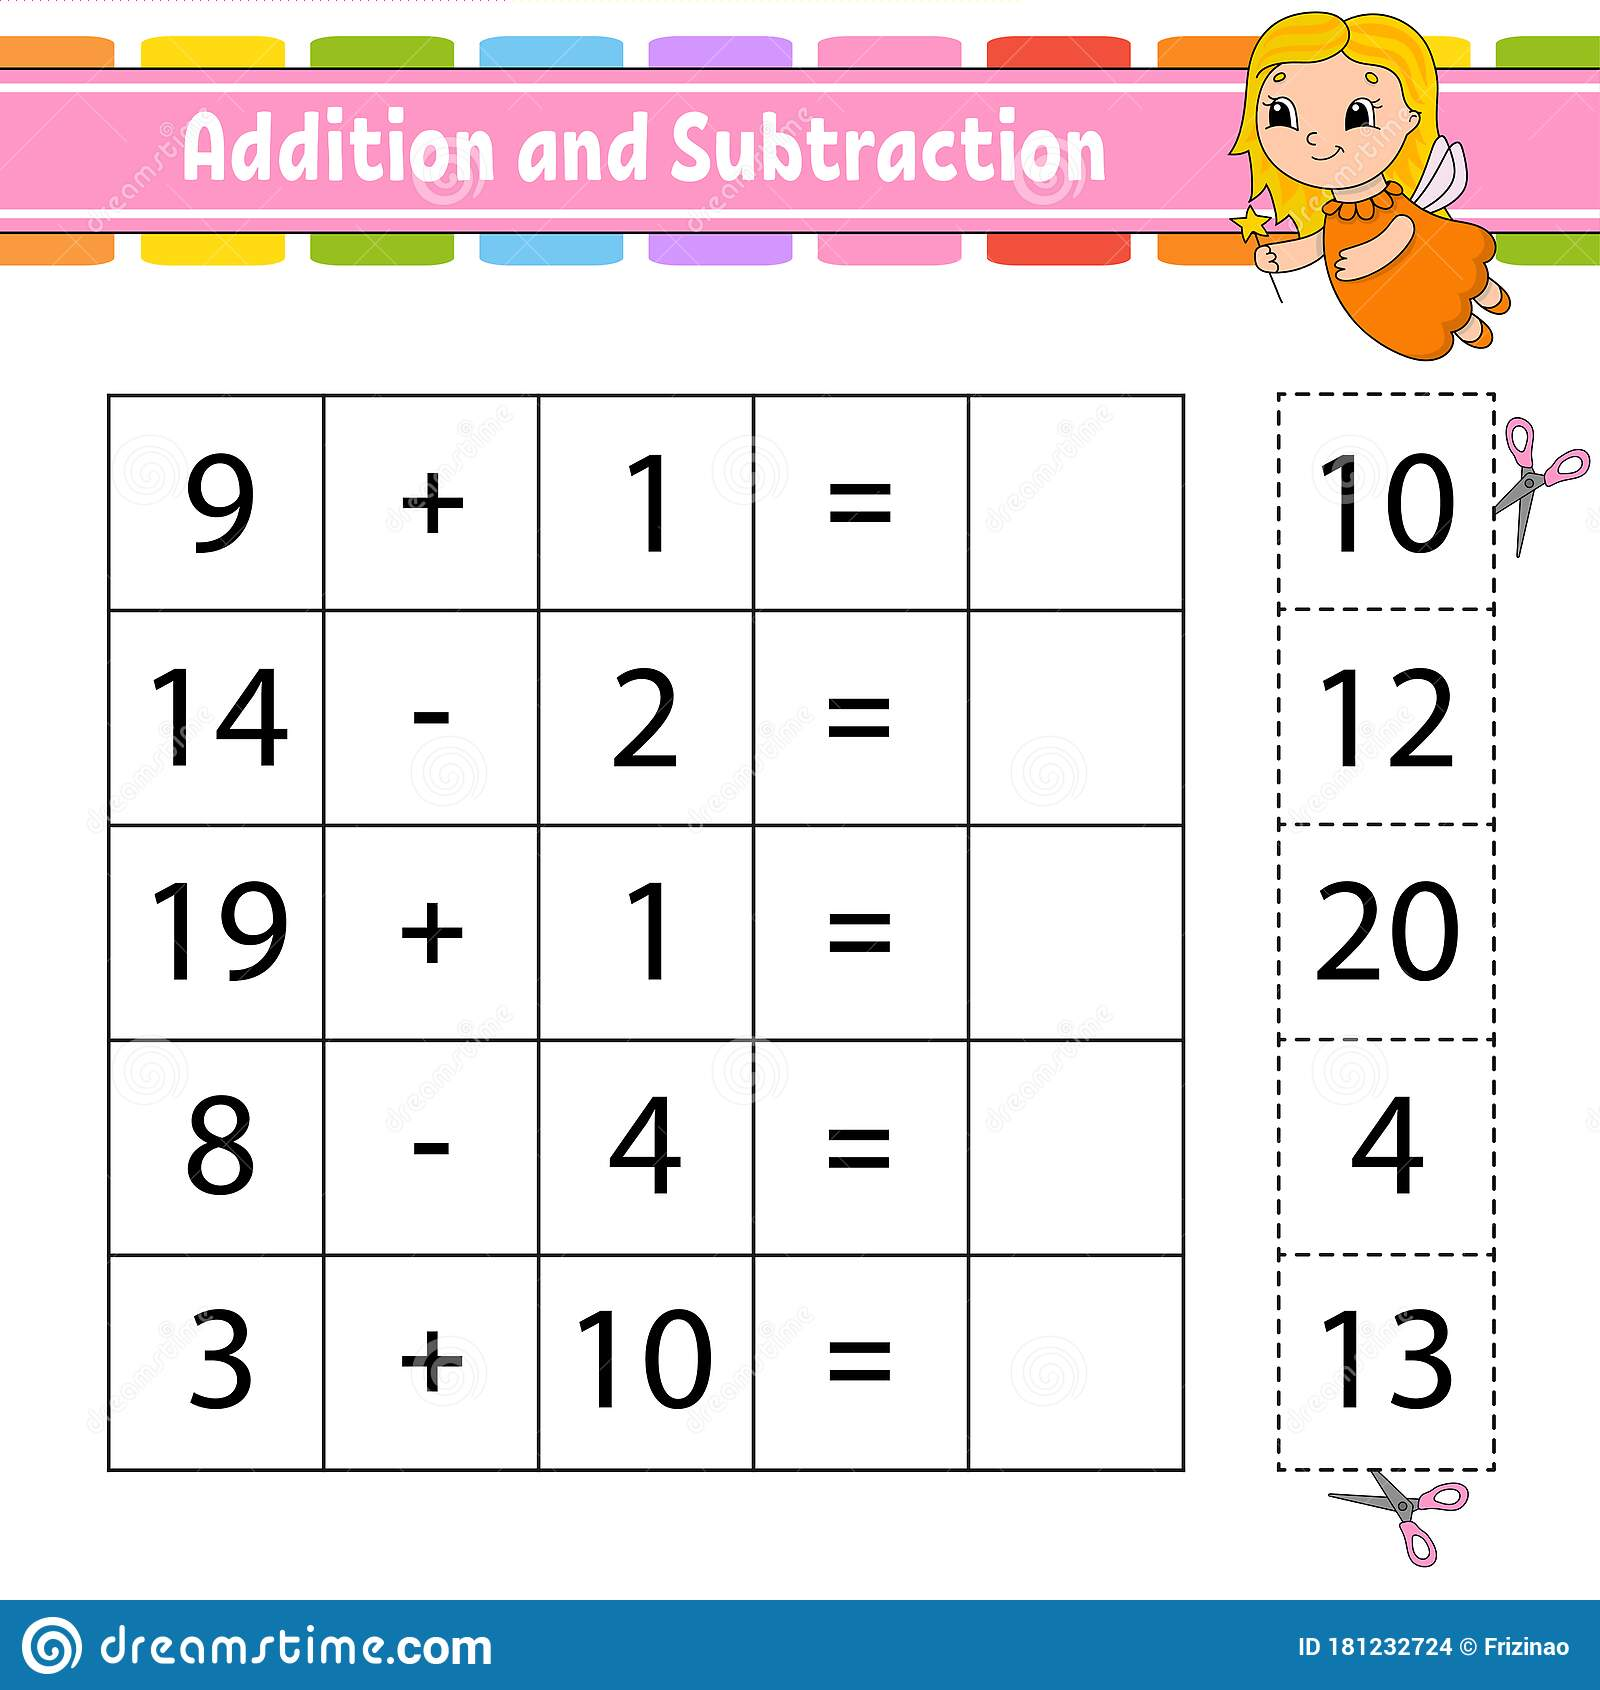 Addition And Subtraction Task For Kids Cut And Paste